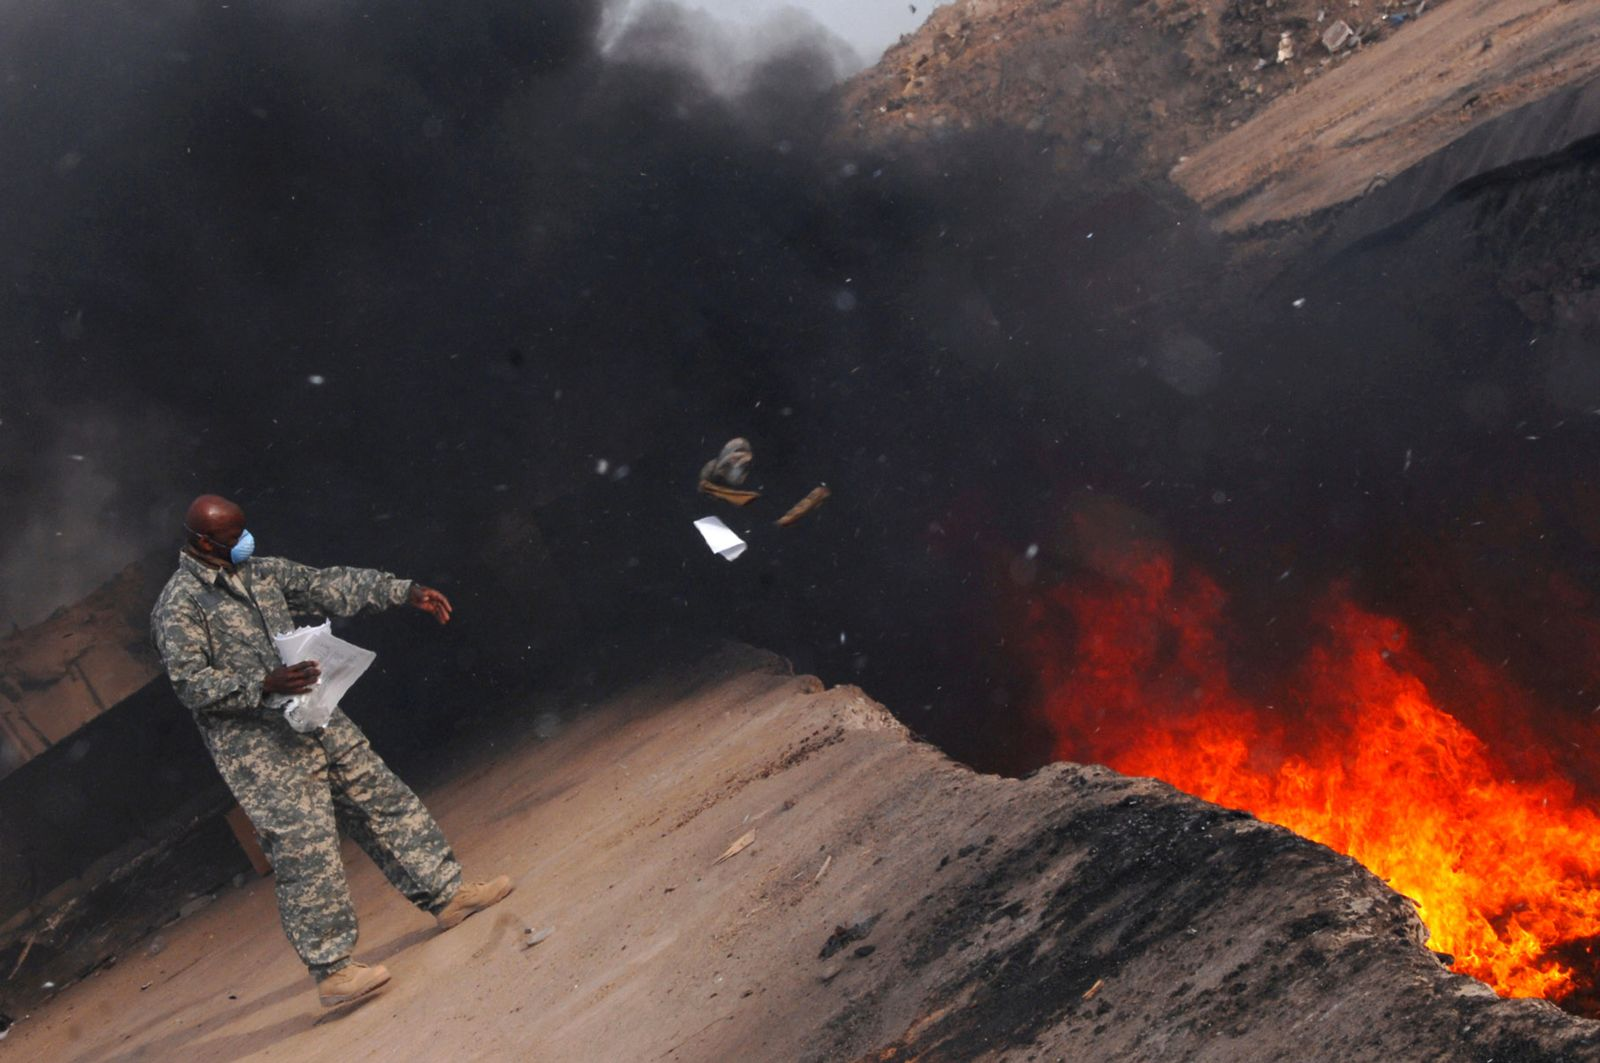 More and more veterans, and veterans' representatives, are realizing the scope of the negative effects brought on by servicemembers' exposure to toxicity from burn pits.